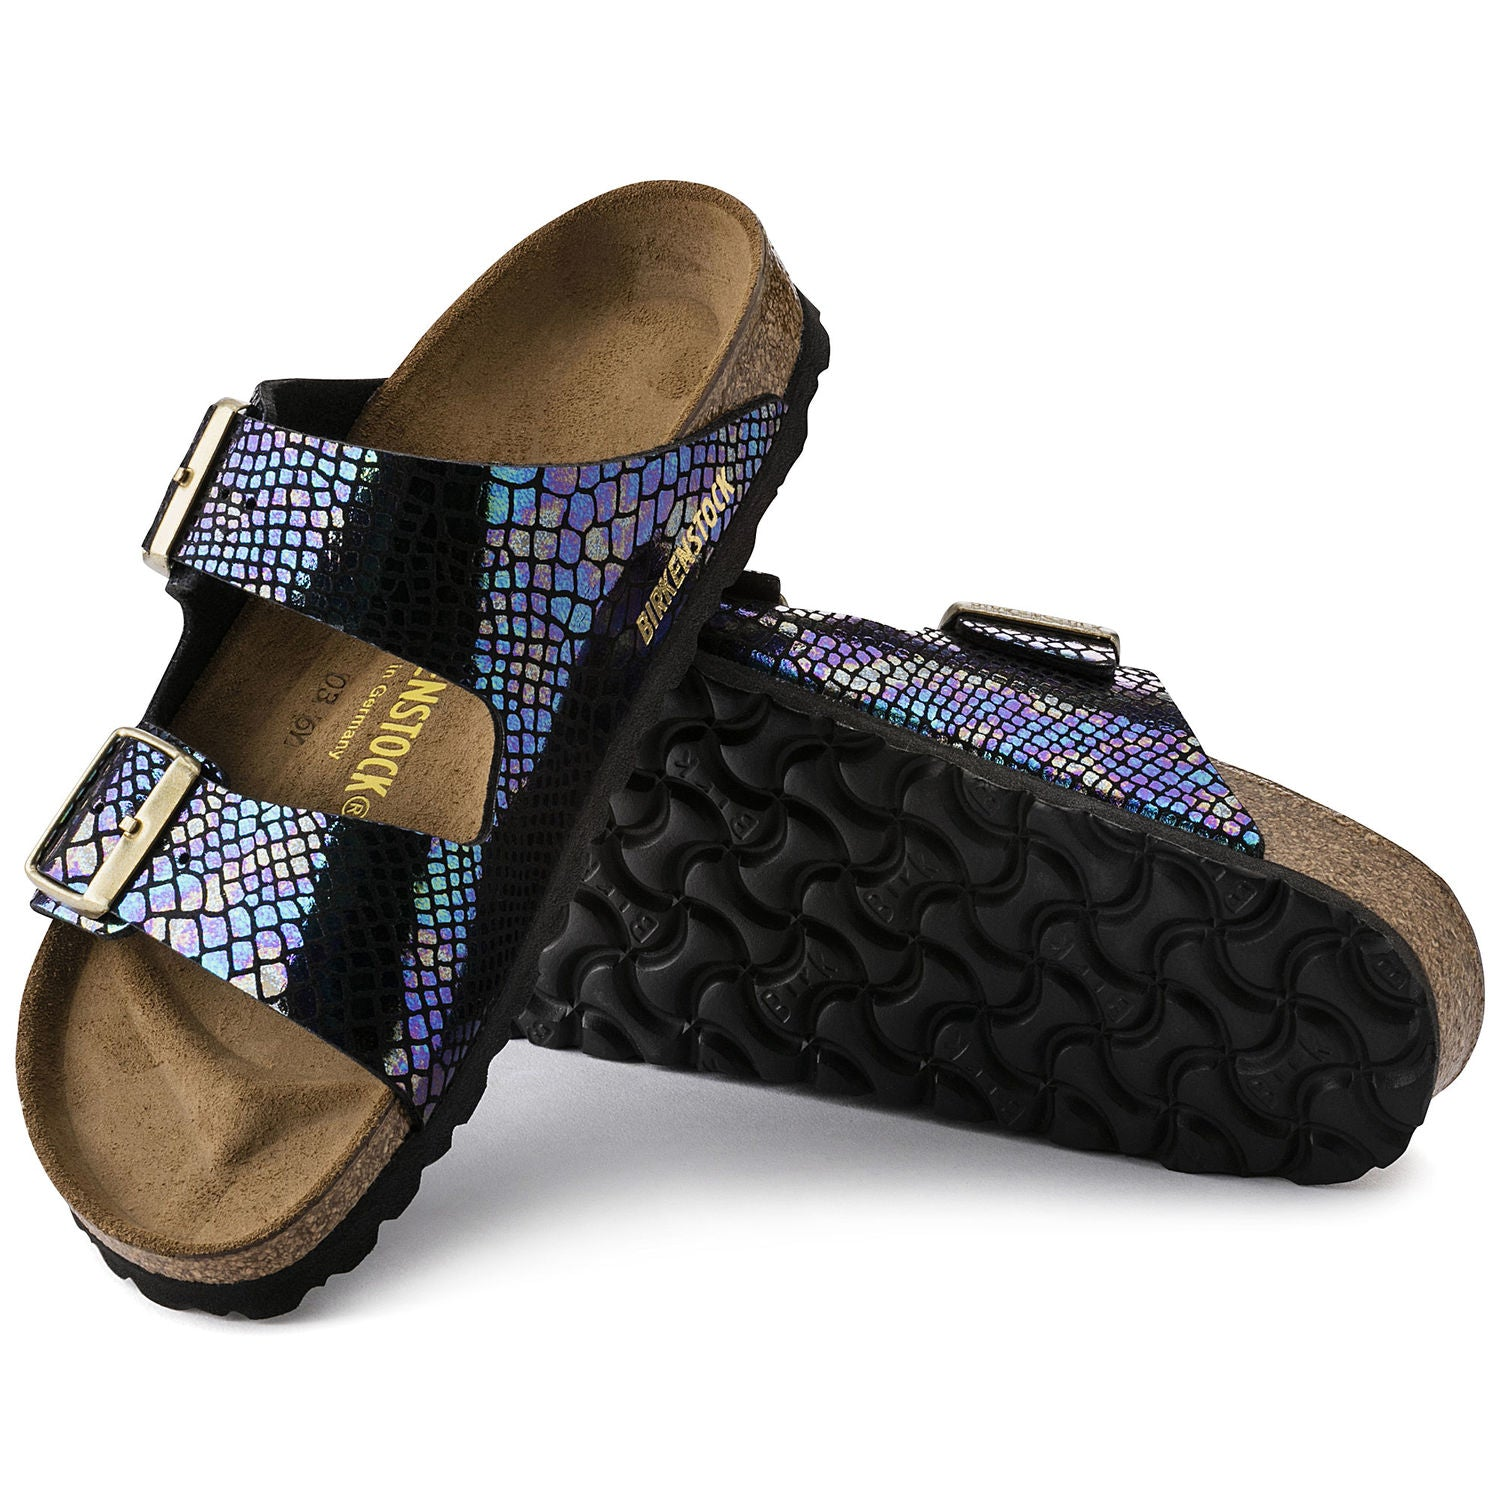 Sandalia Arizona Shiny Snake Black Multi